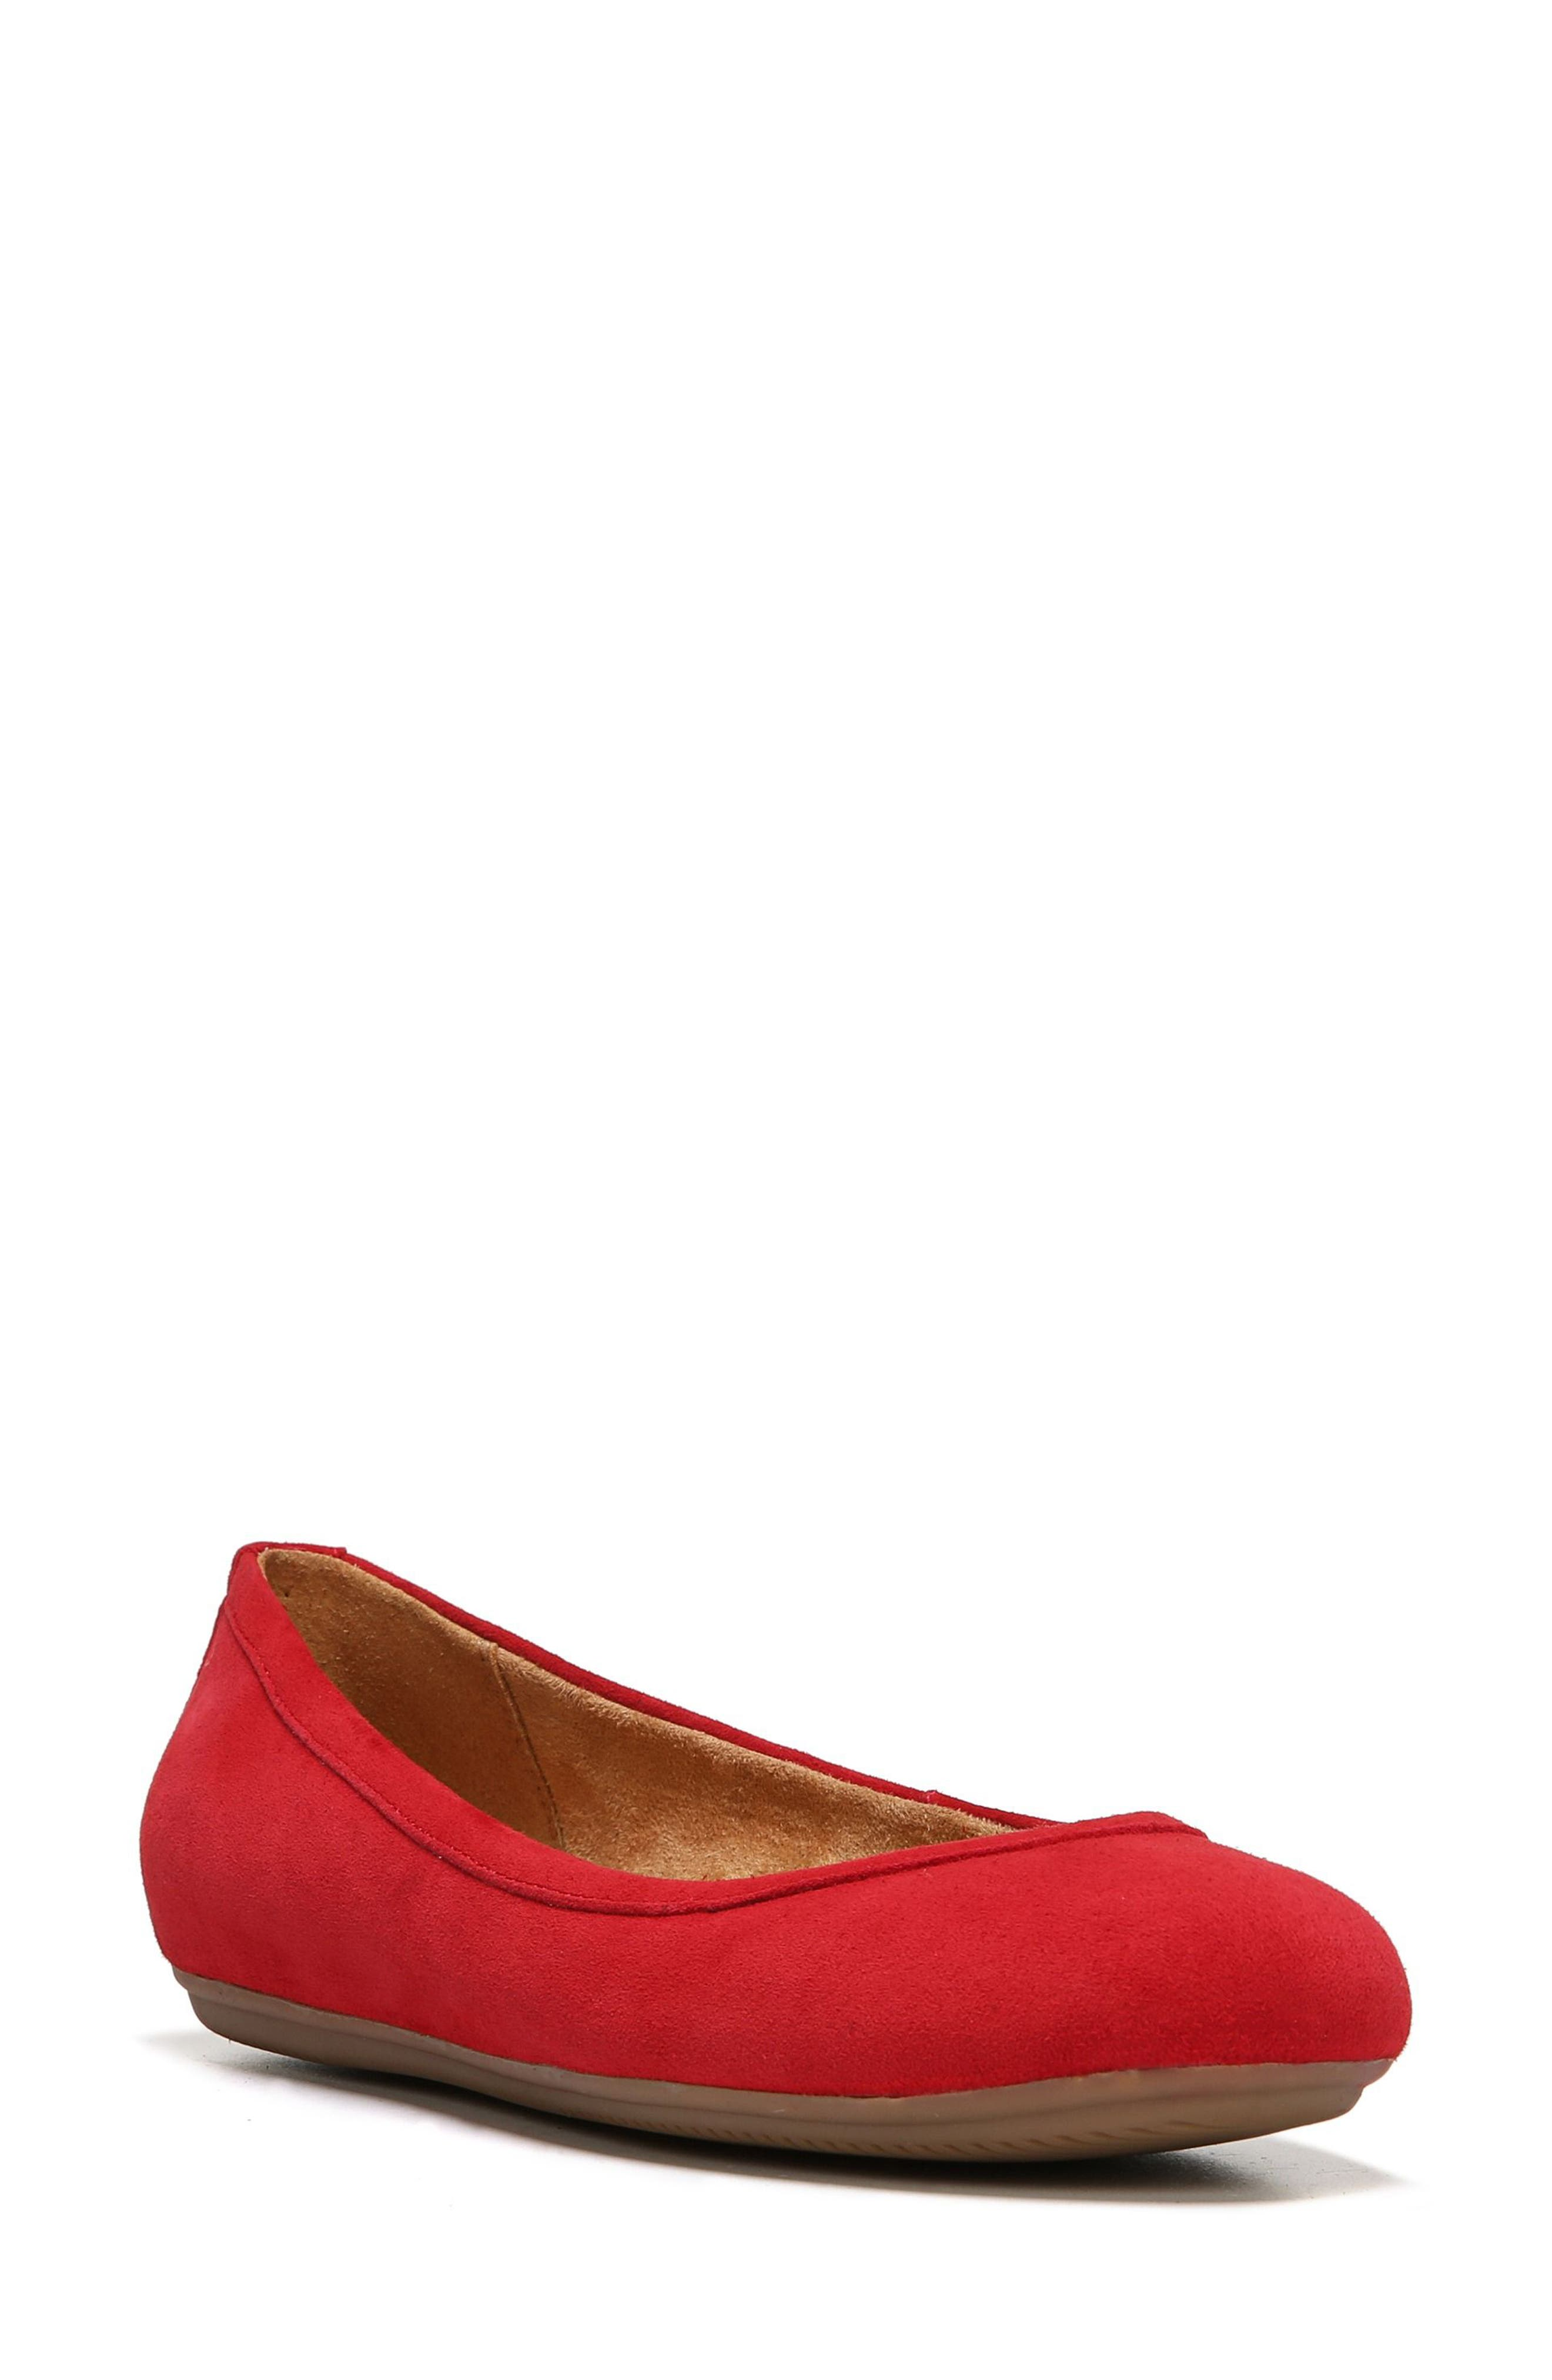 Main Image - Naturalizer Brittany Ballet Flat (Women)